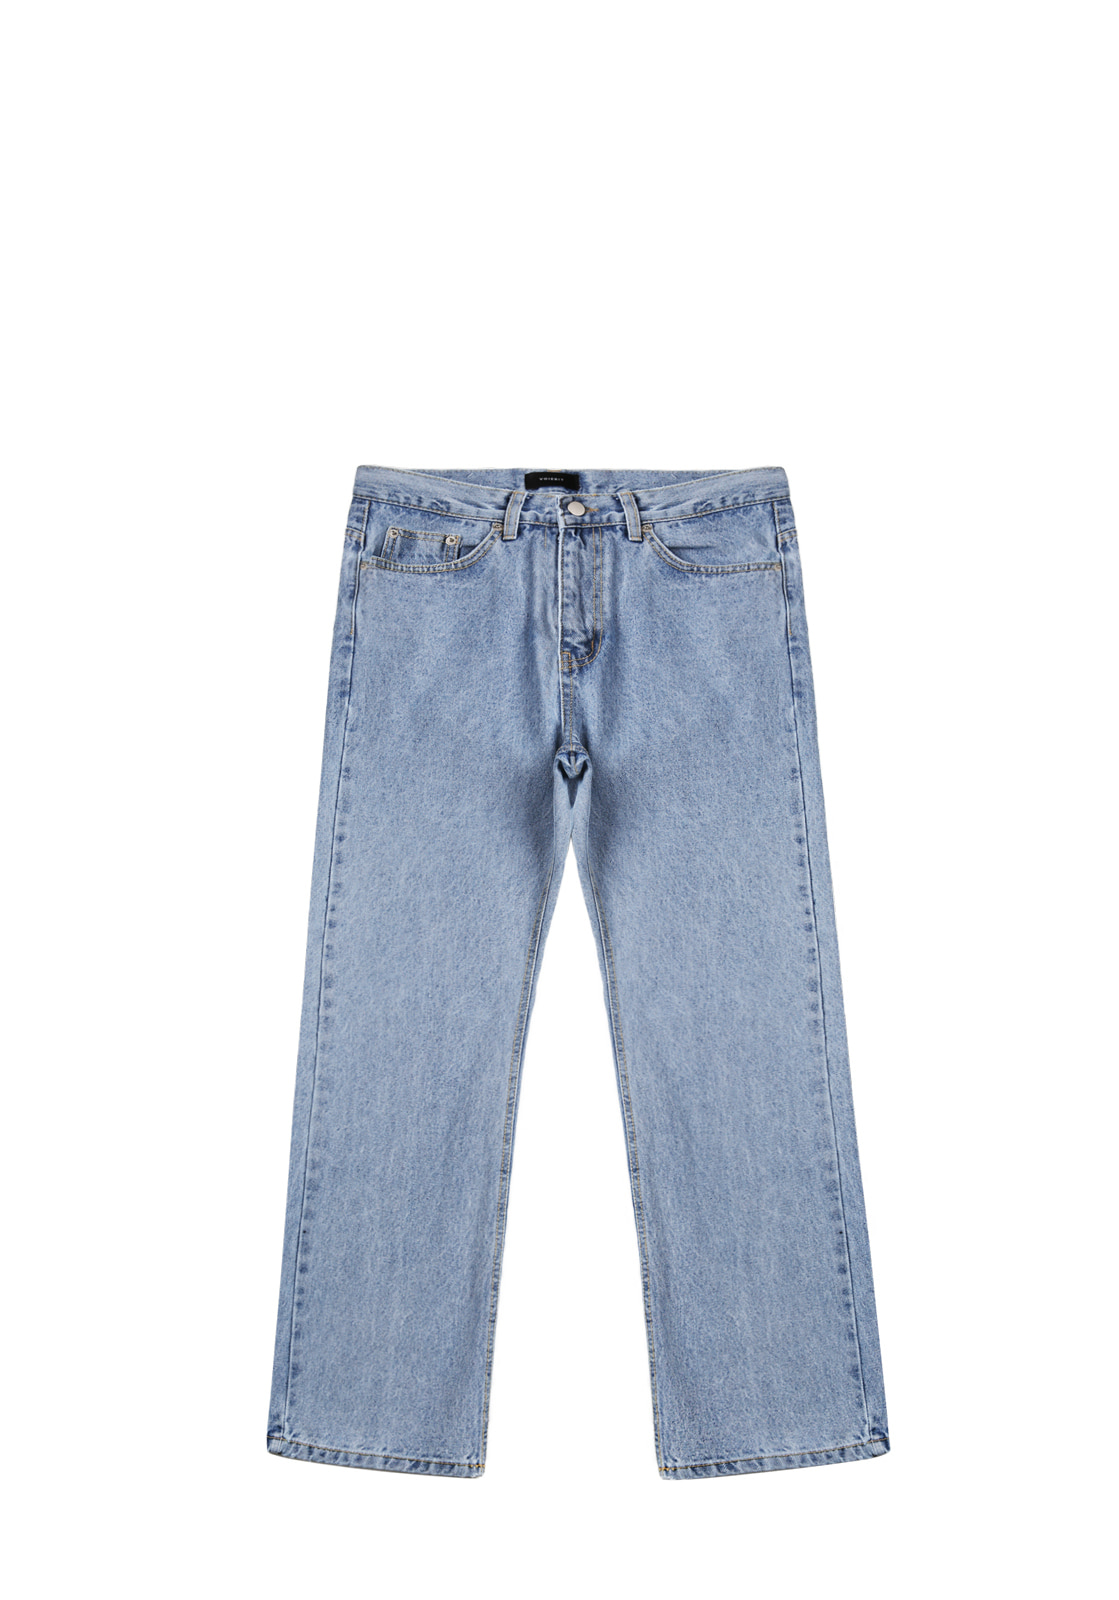 V232 LIGHT NONE SPAN WIDE DENIM PANTS  LIGHT BLUE